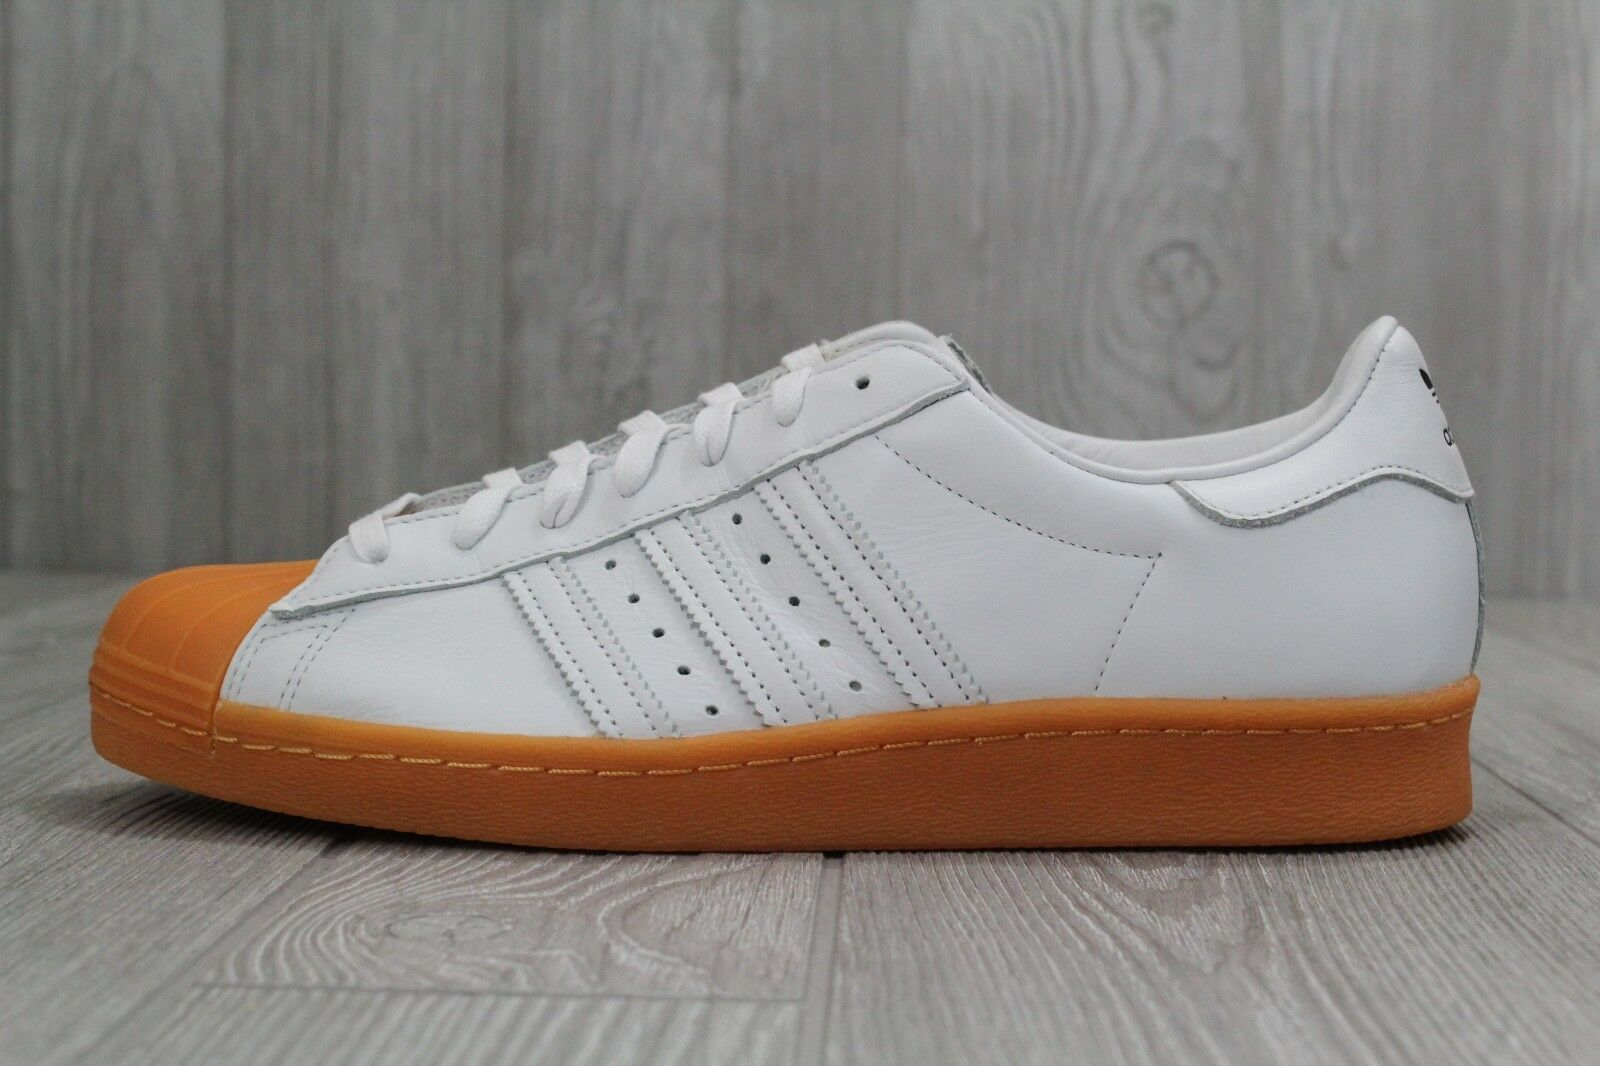 31 New Adidas Originals White Superstar 80S Dlx Mens White Originals Trainers Shoes S75830 9-11 ddc9f1